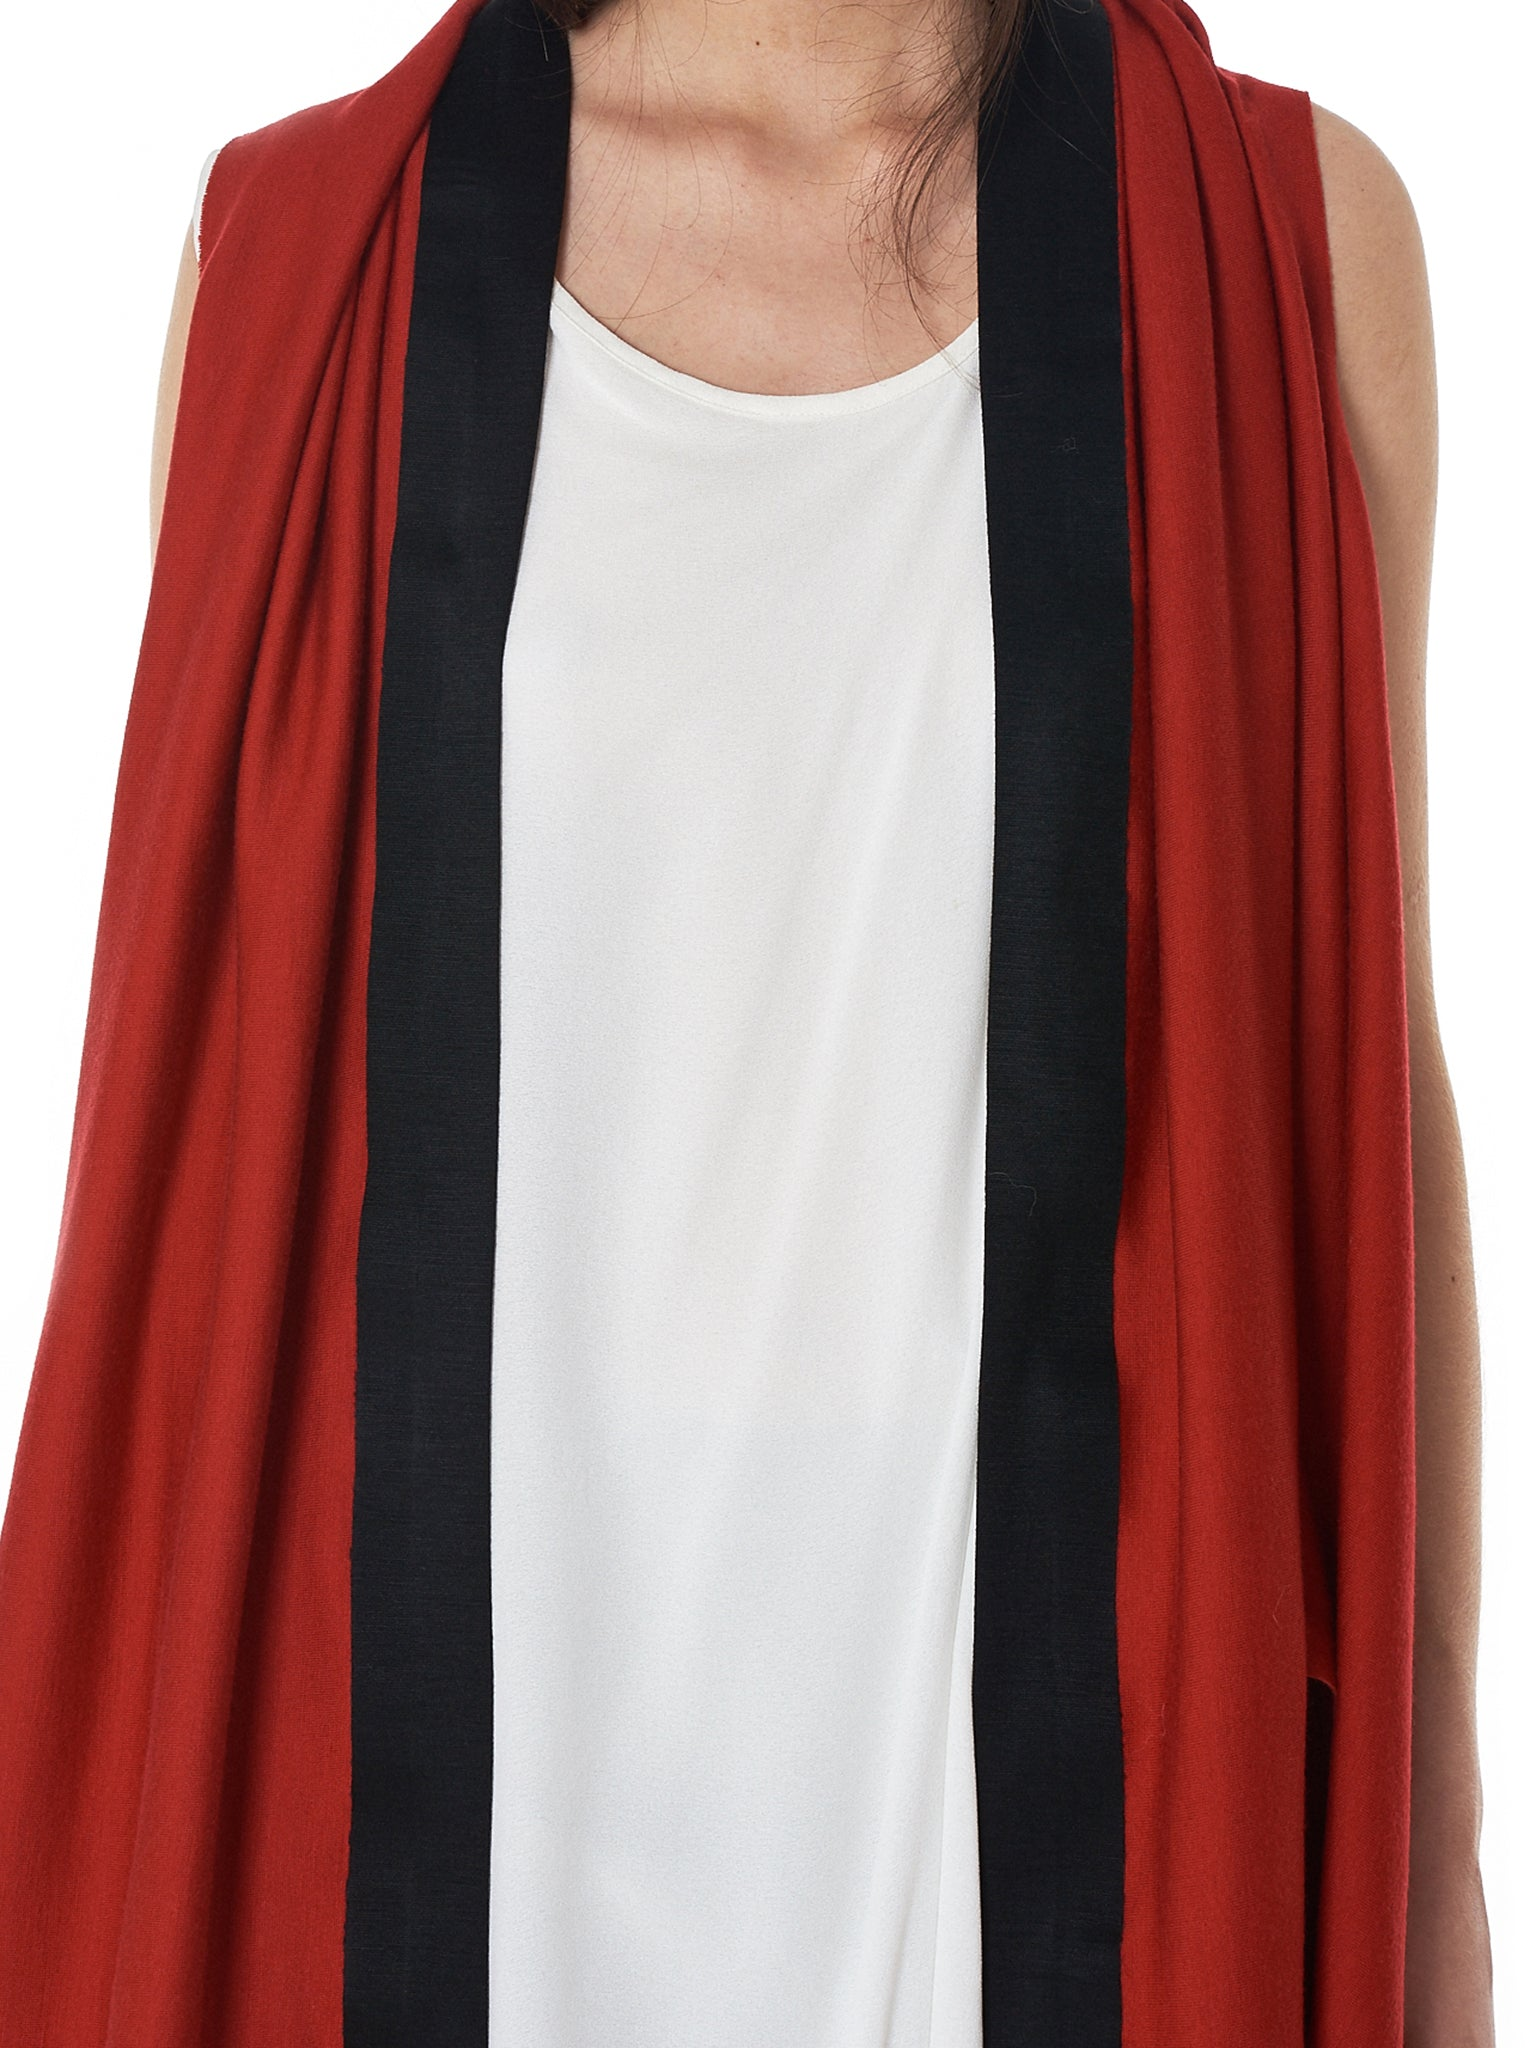 Geometric Knit Vest (00060-RECT-BASED-RED-BLK)